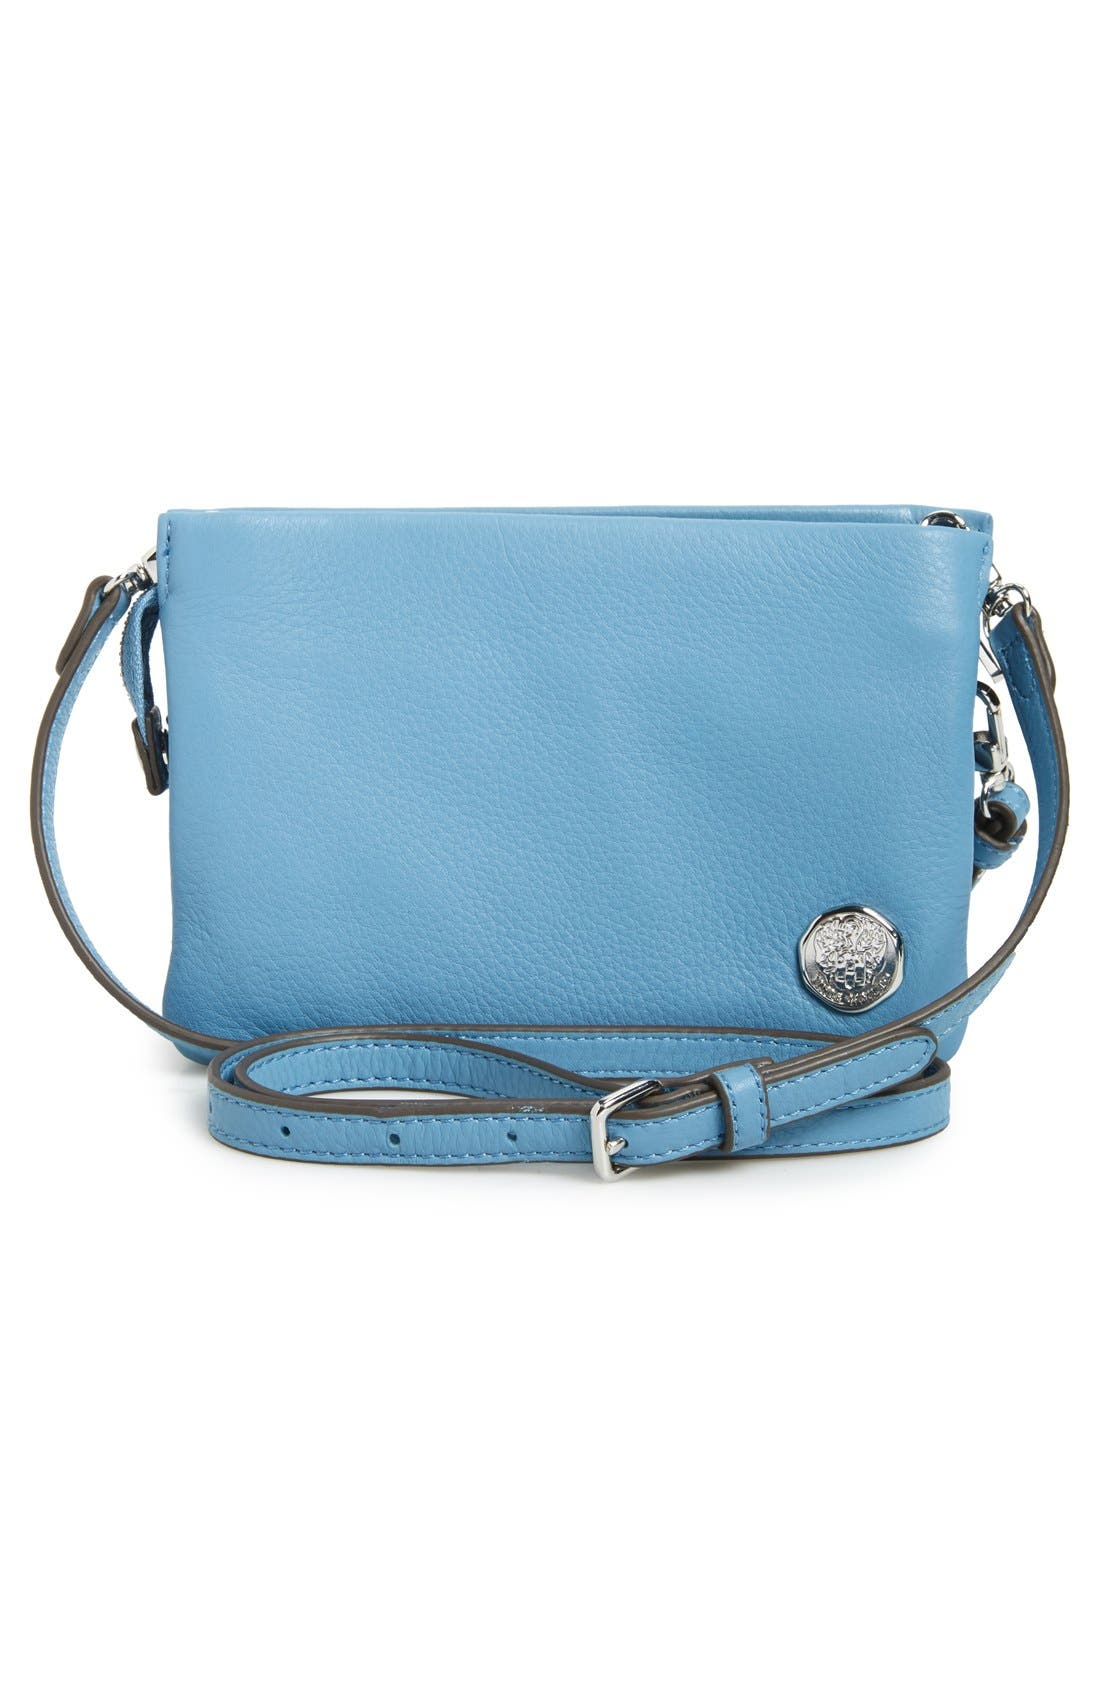 'Cami' Leather Crossbody Bag,                             Alternate thumbnail 90, color,